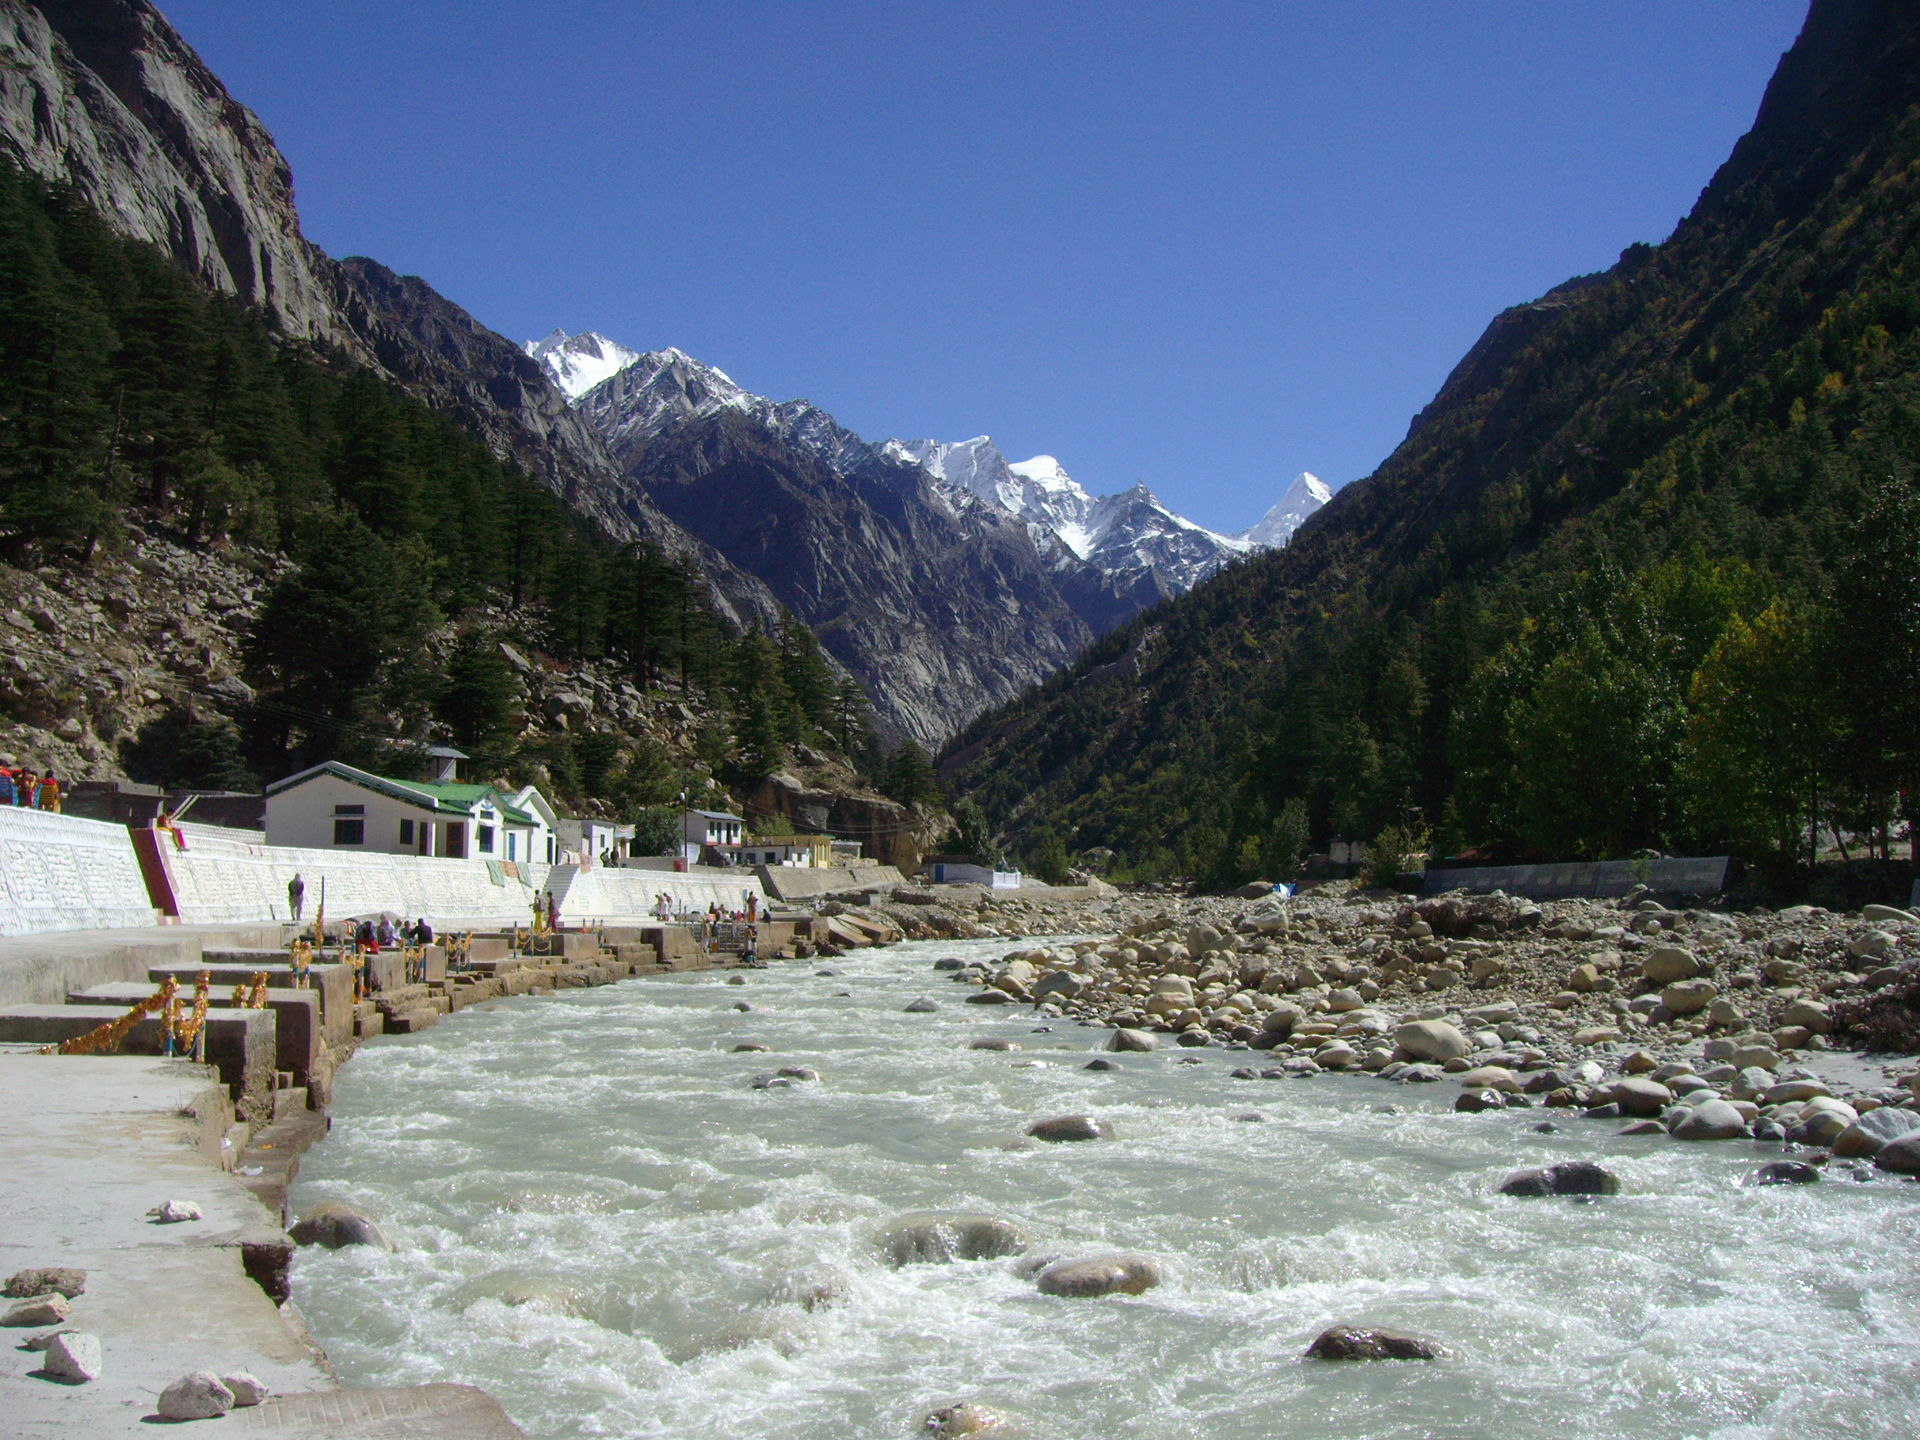 bhagirathi river and alaknanda meet at the pole